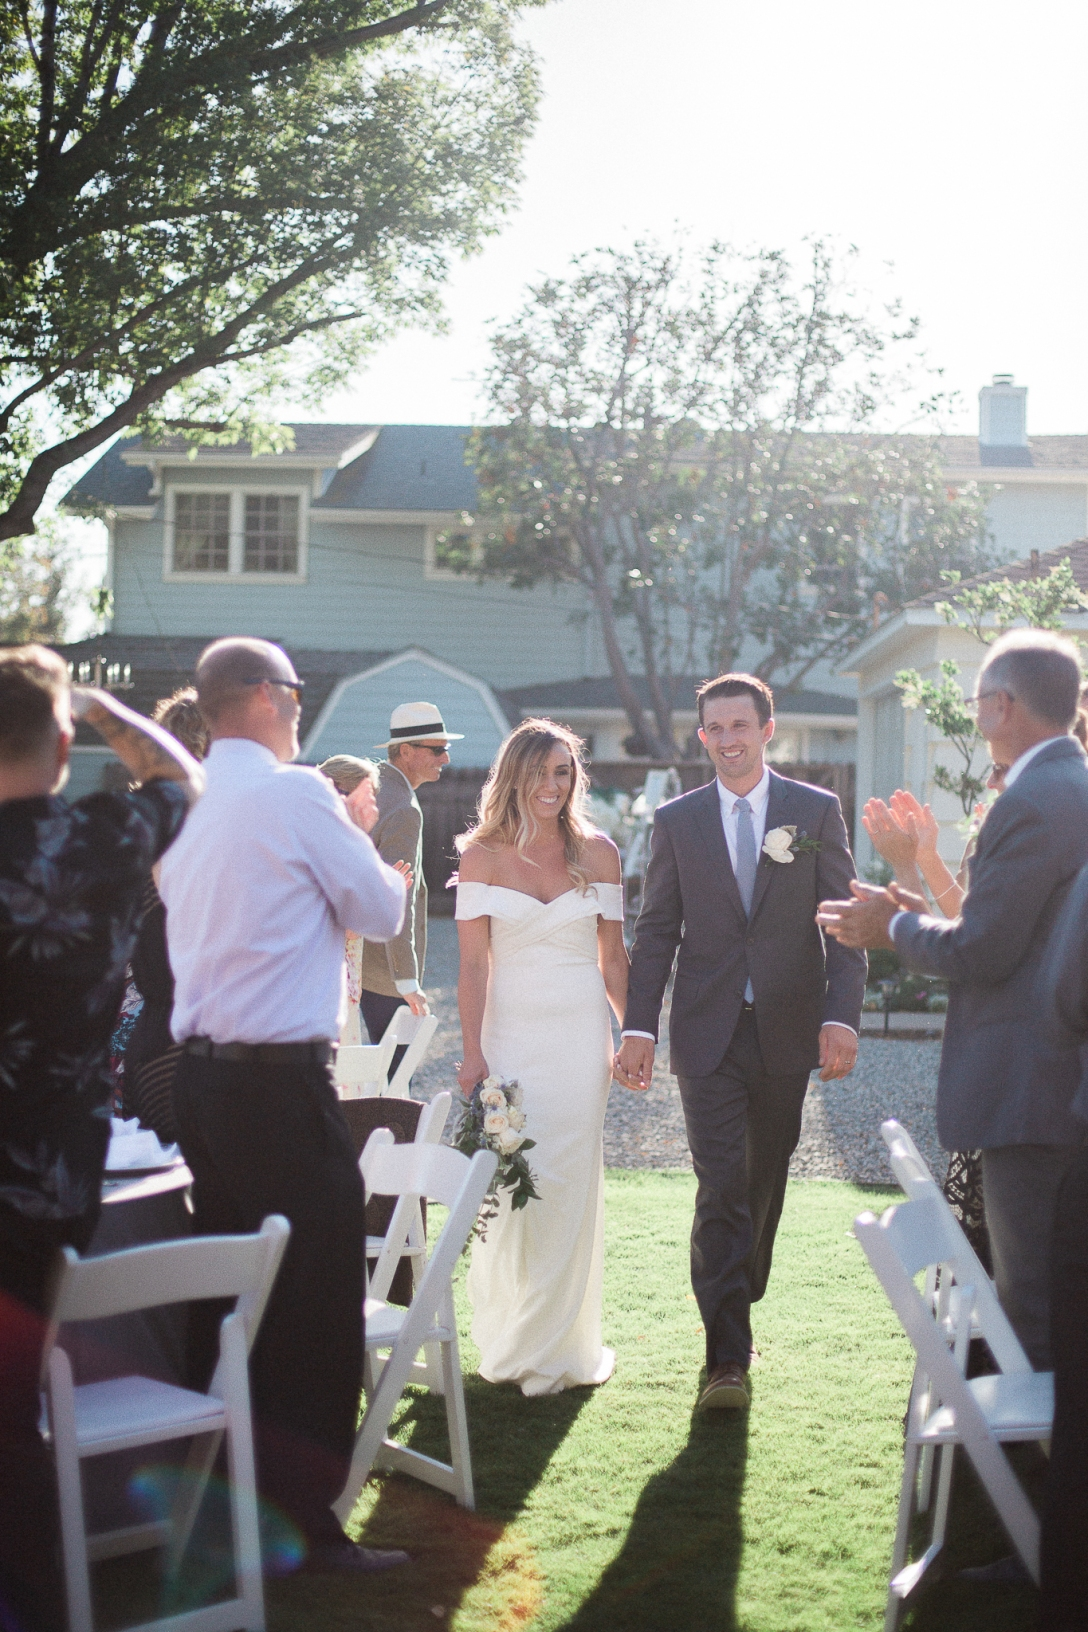 Katy-Steve-Wedding-Tustin-California-73